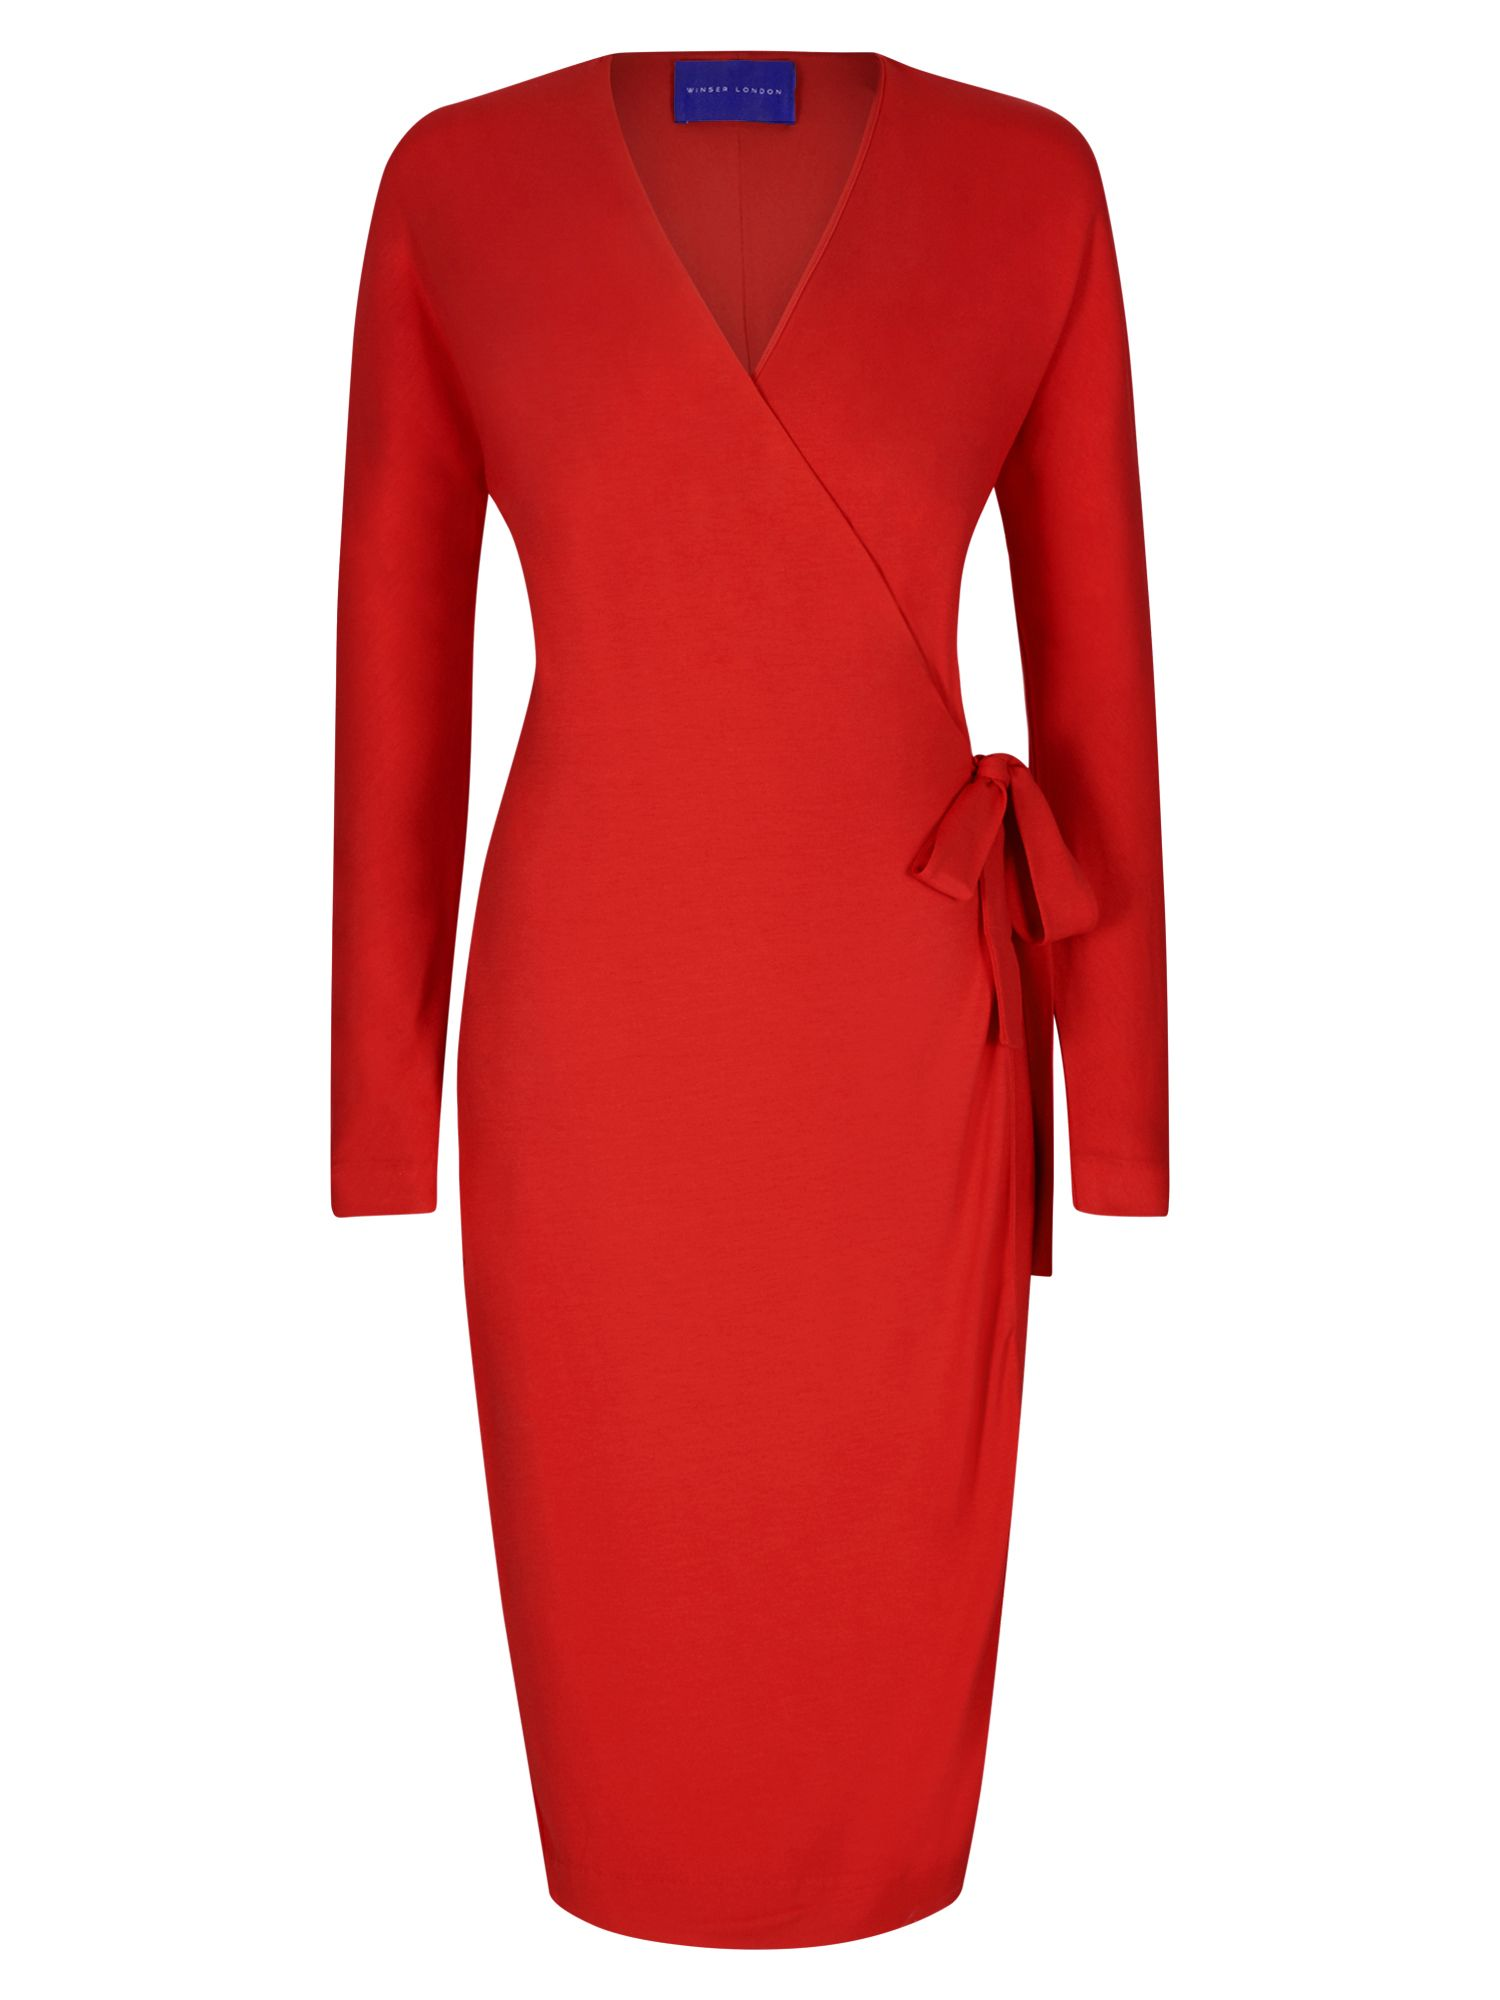 Winser London Wrap Jersey Dress, Red